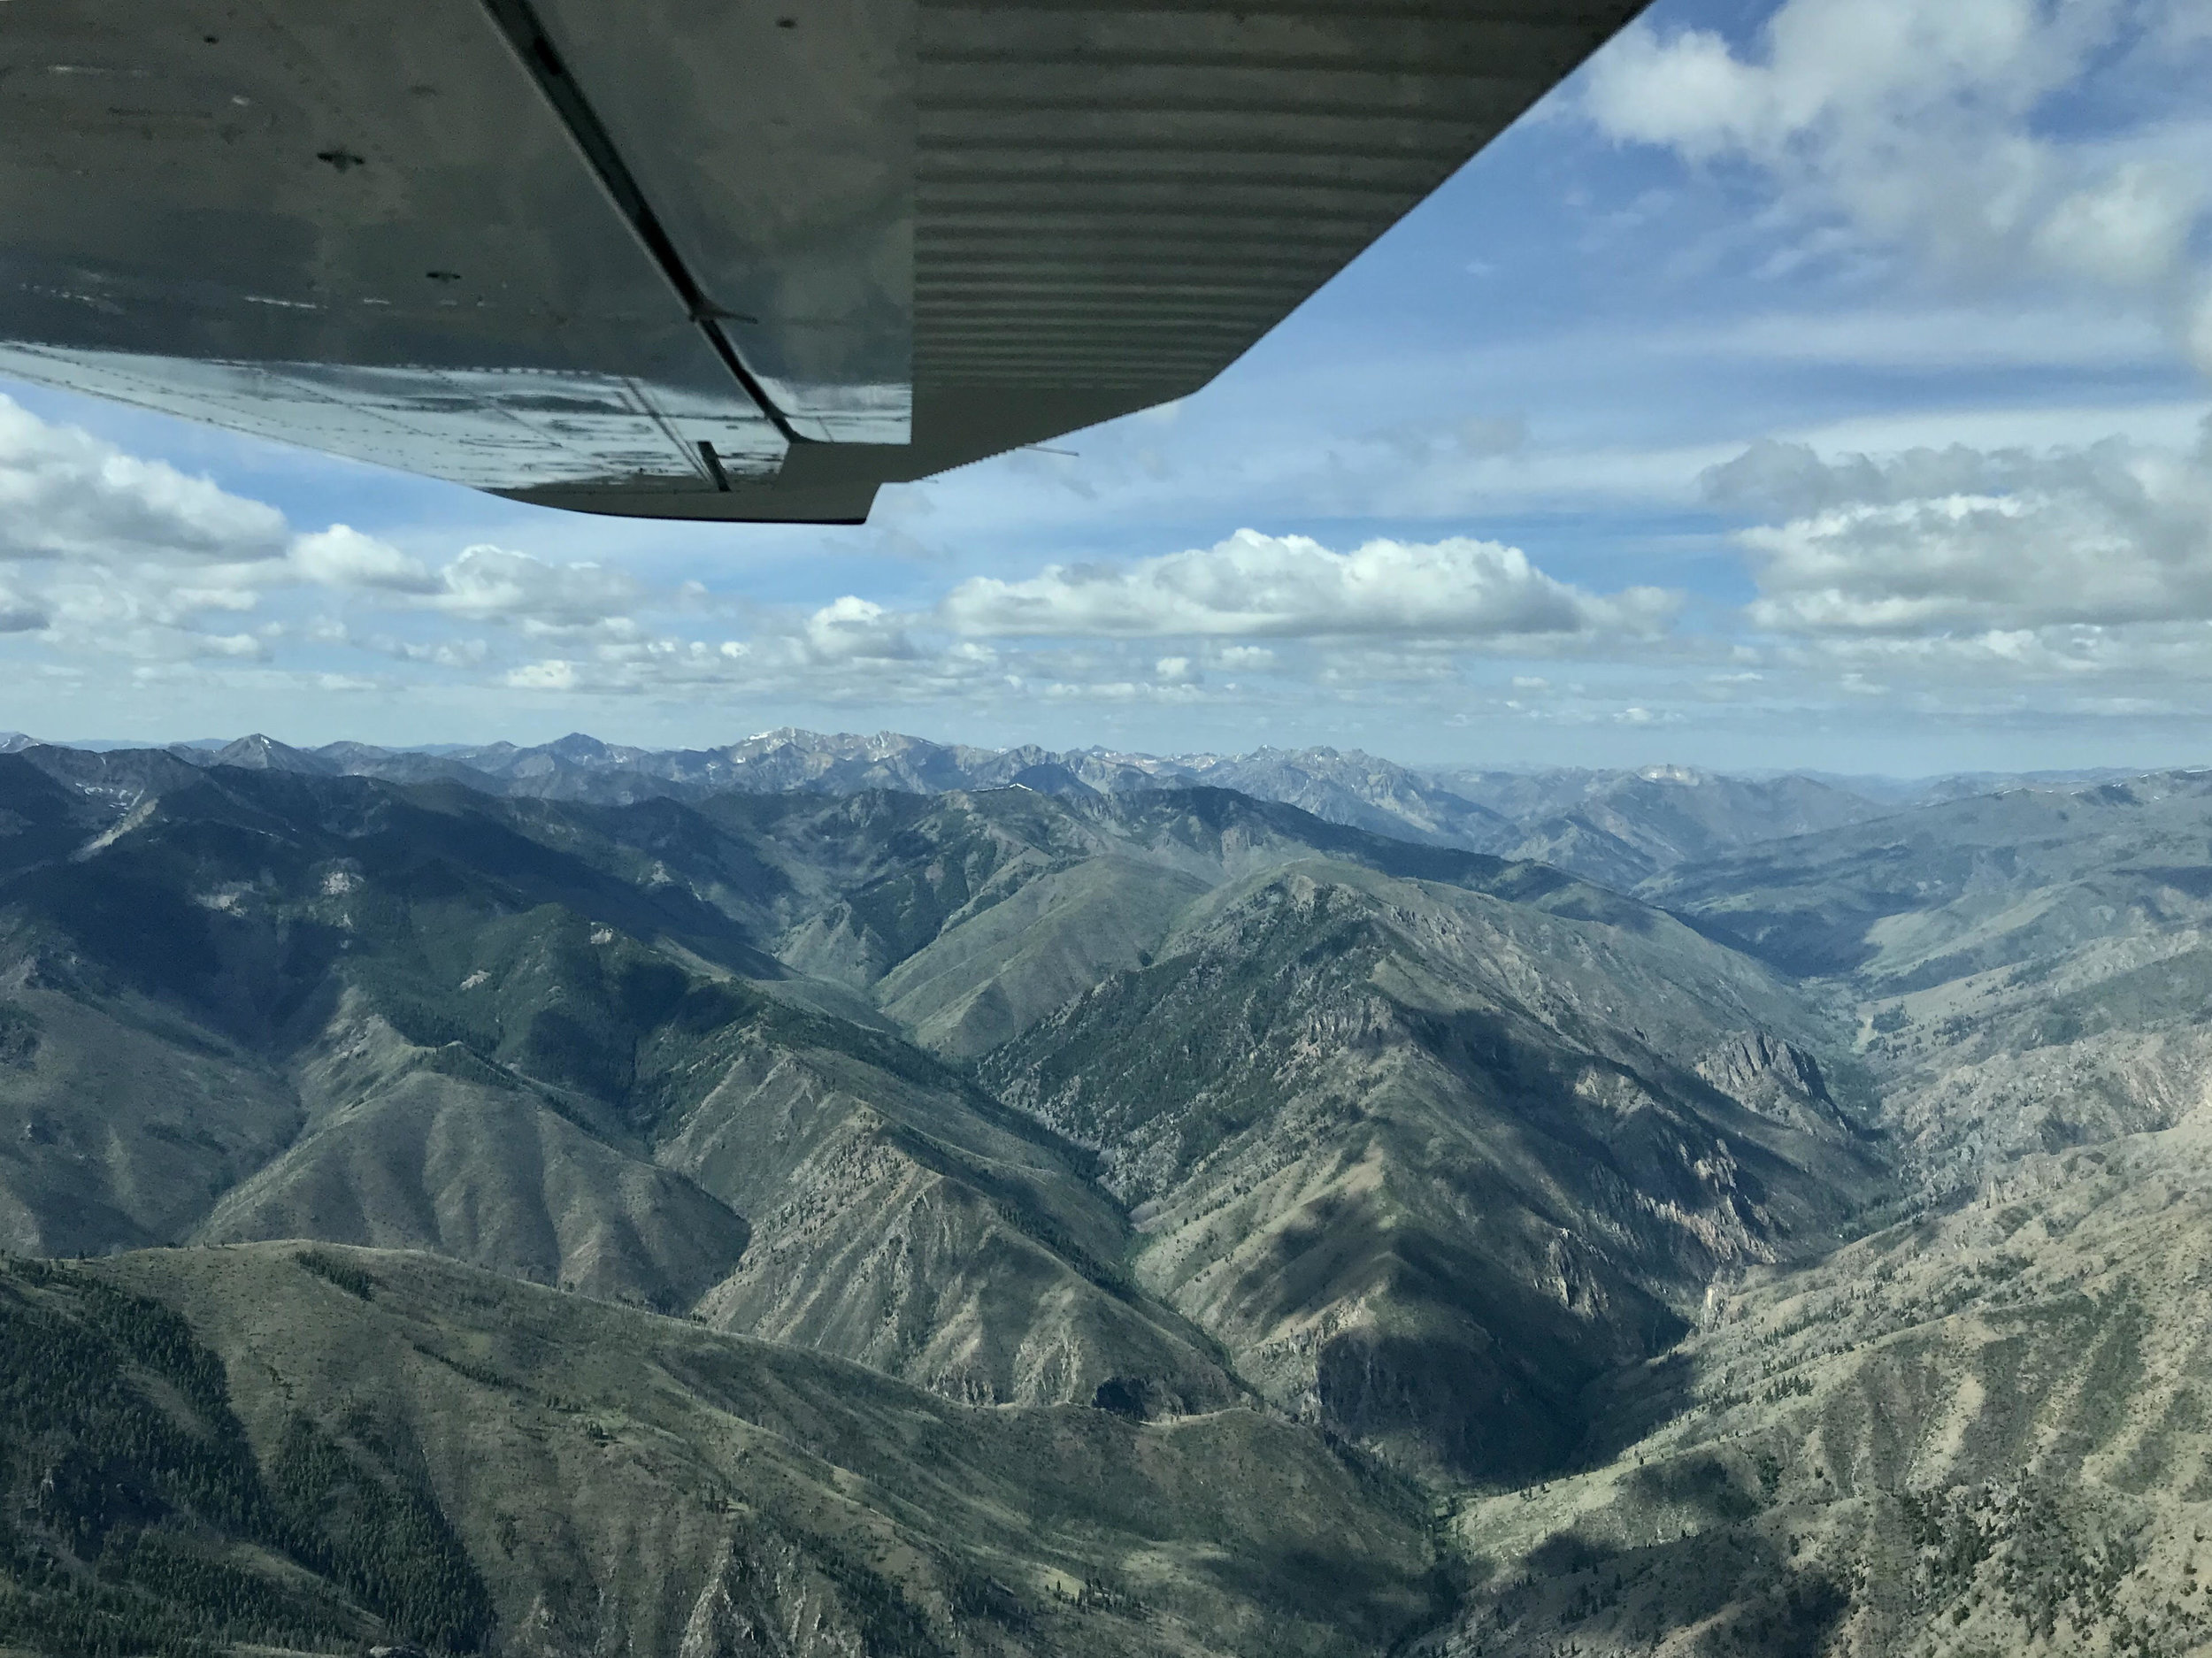 The view out over the Frank Church as we flew back into Challis on 07/17